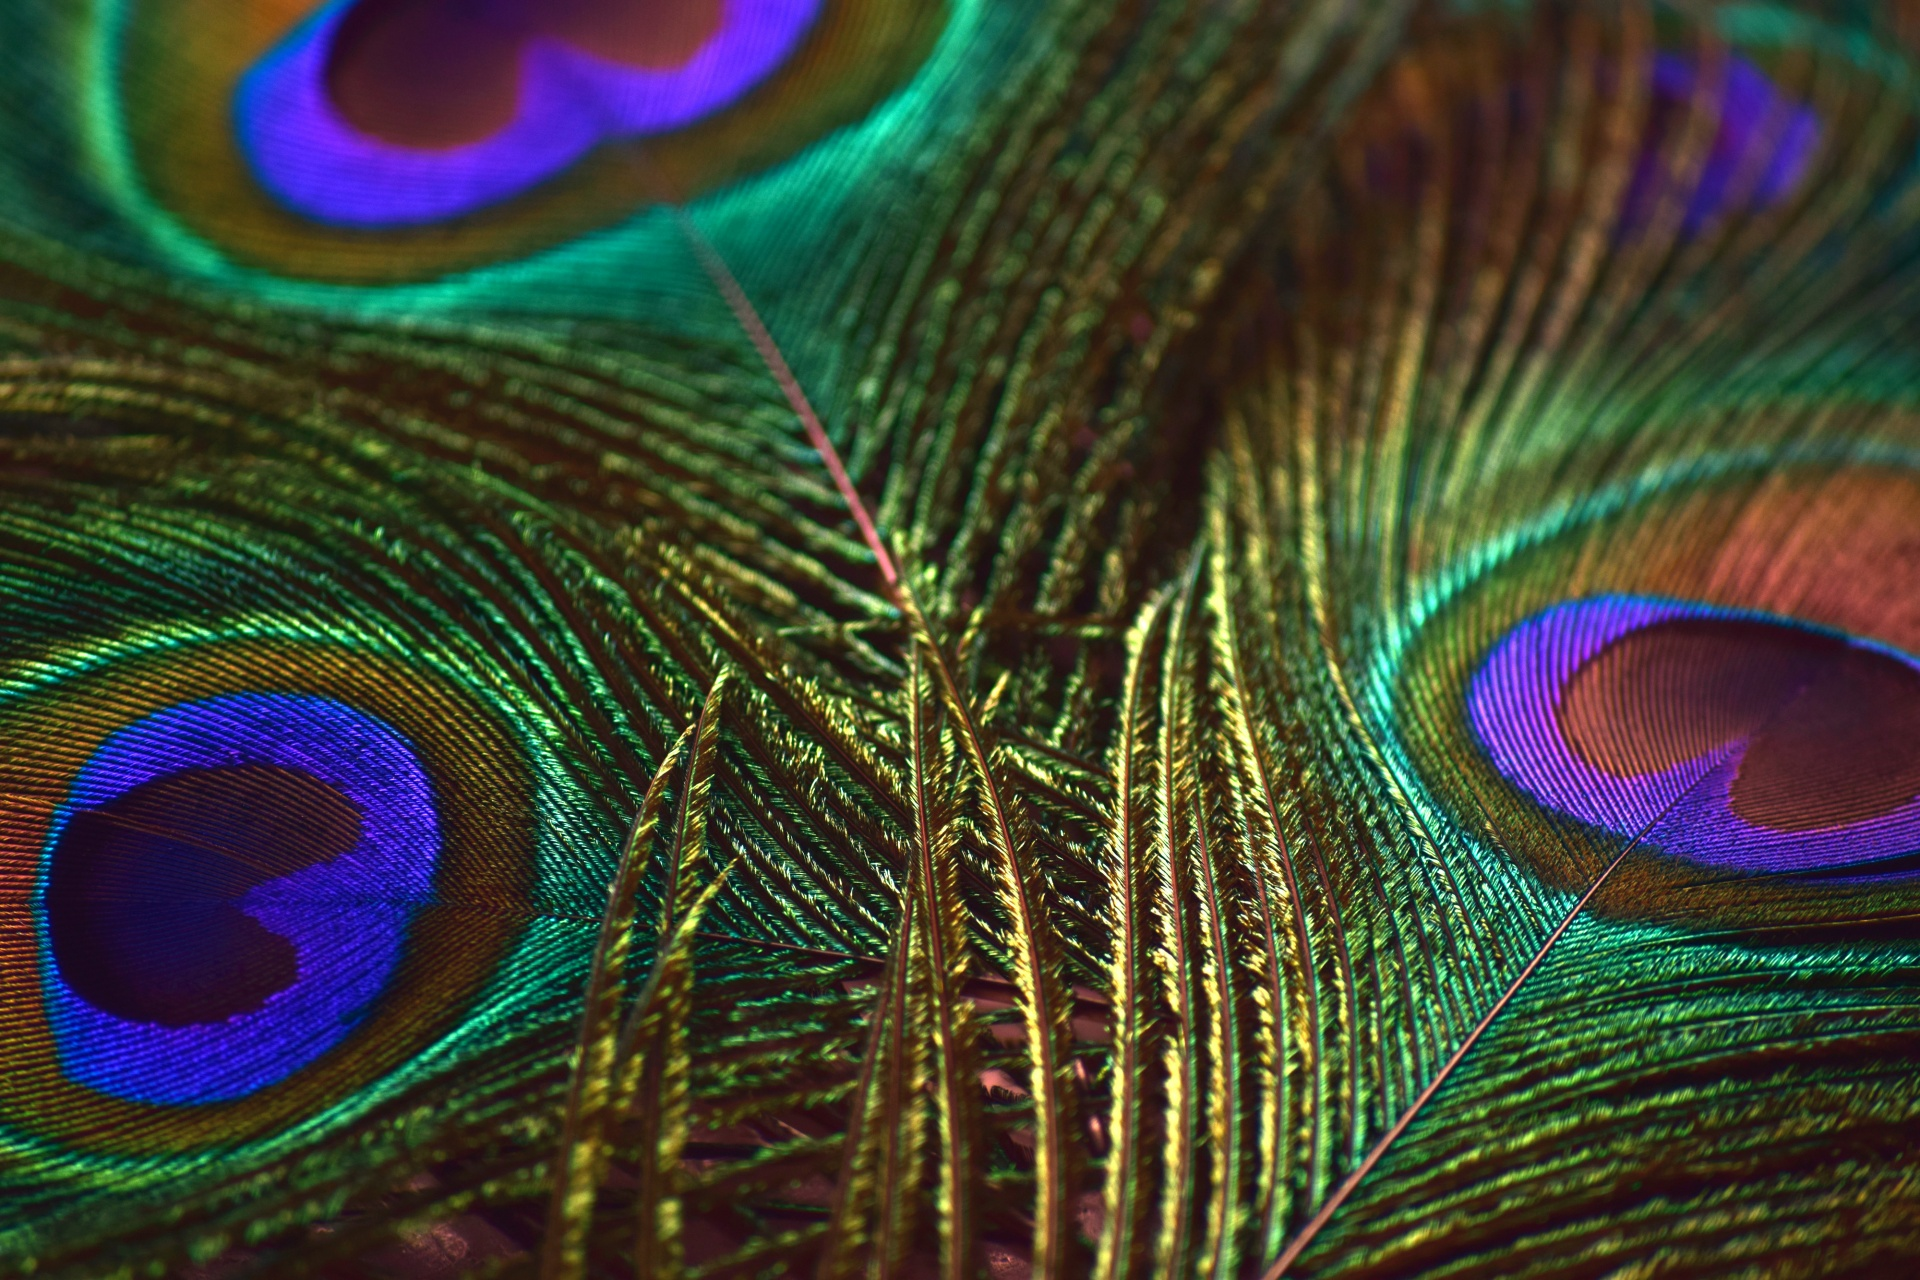 Feather,colors,peacock,bird,animal - free photo from needpix com